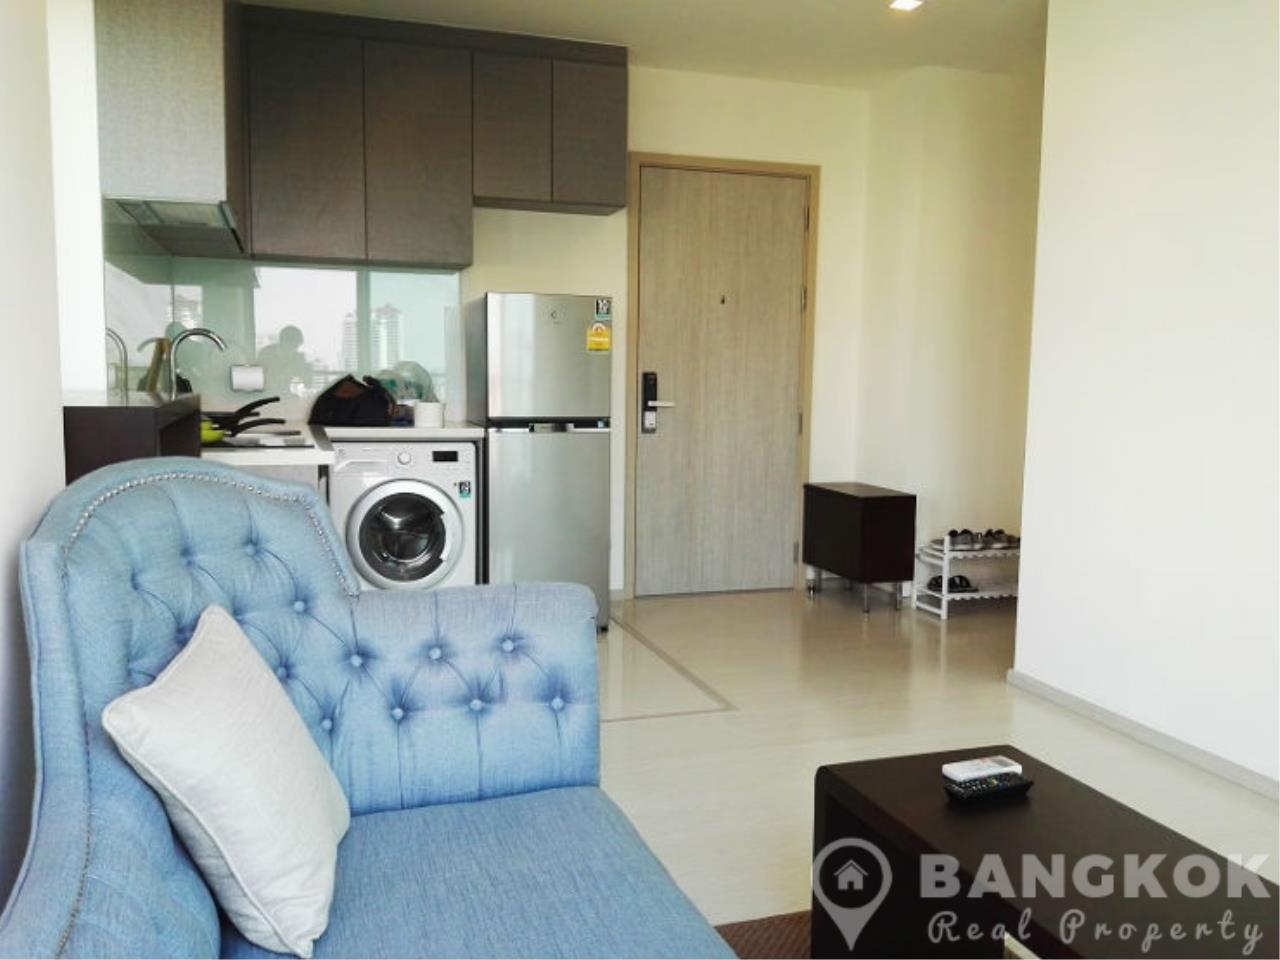 Bangkok Real Property Agency's Rhythm Sukhumvit 36-38 | Brand New Spacious 1 Bed near BTS 2